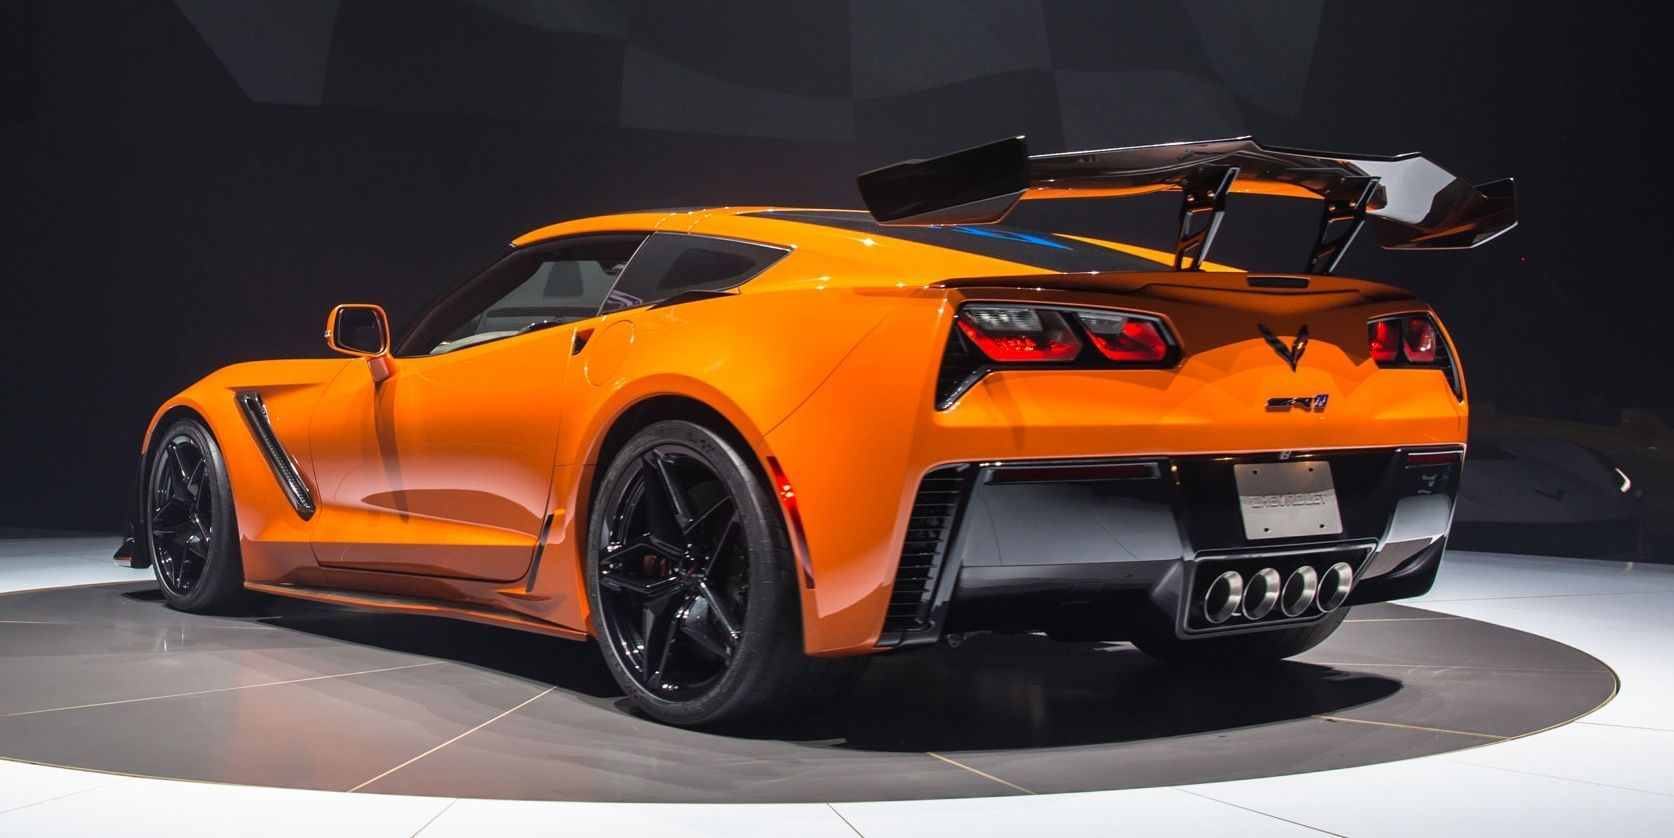 new cars 2018 models Yahoo Image Search Results